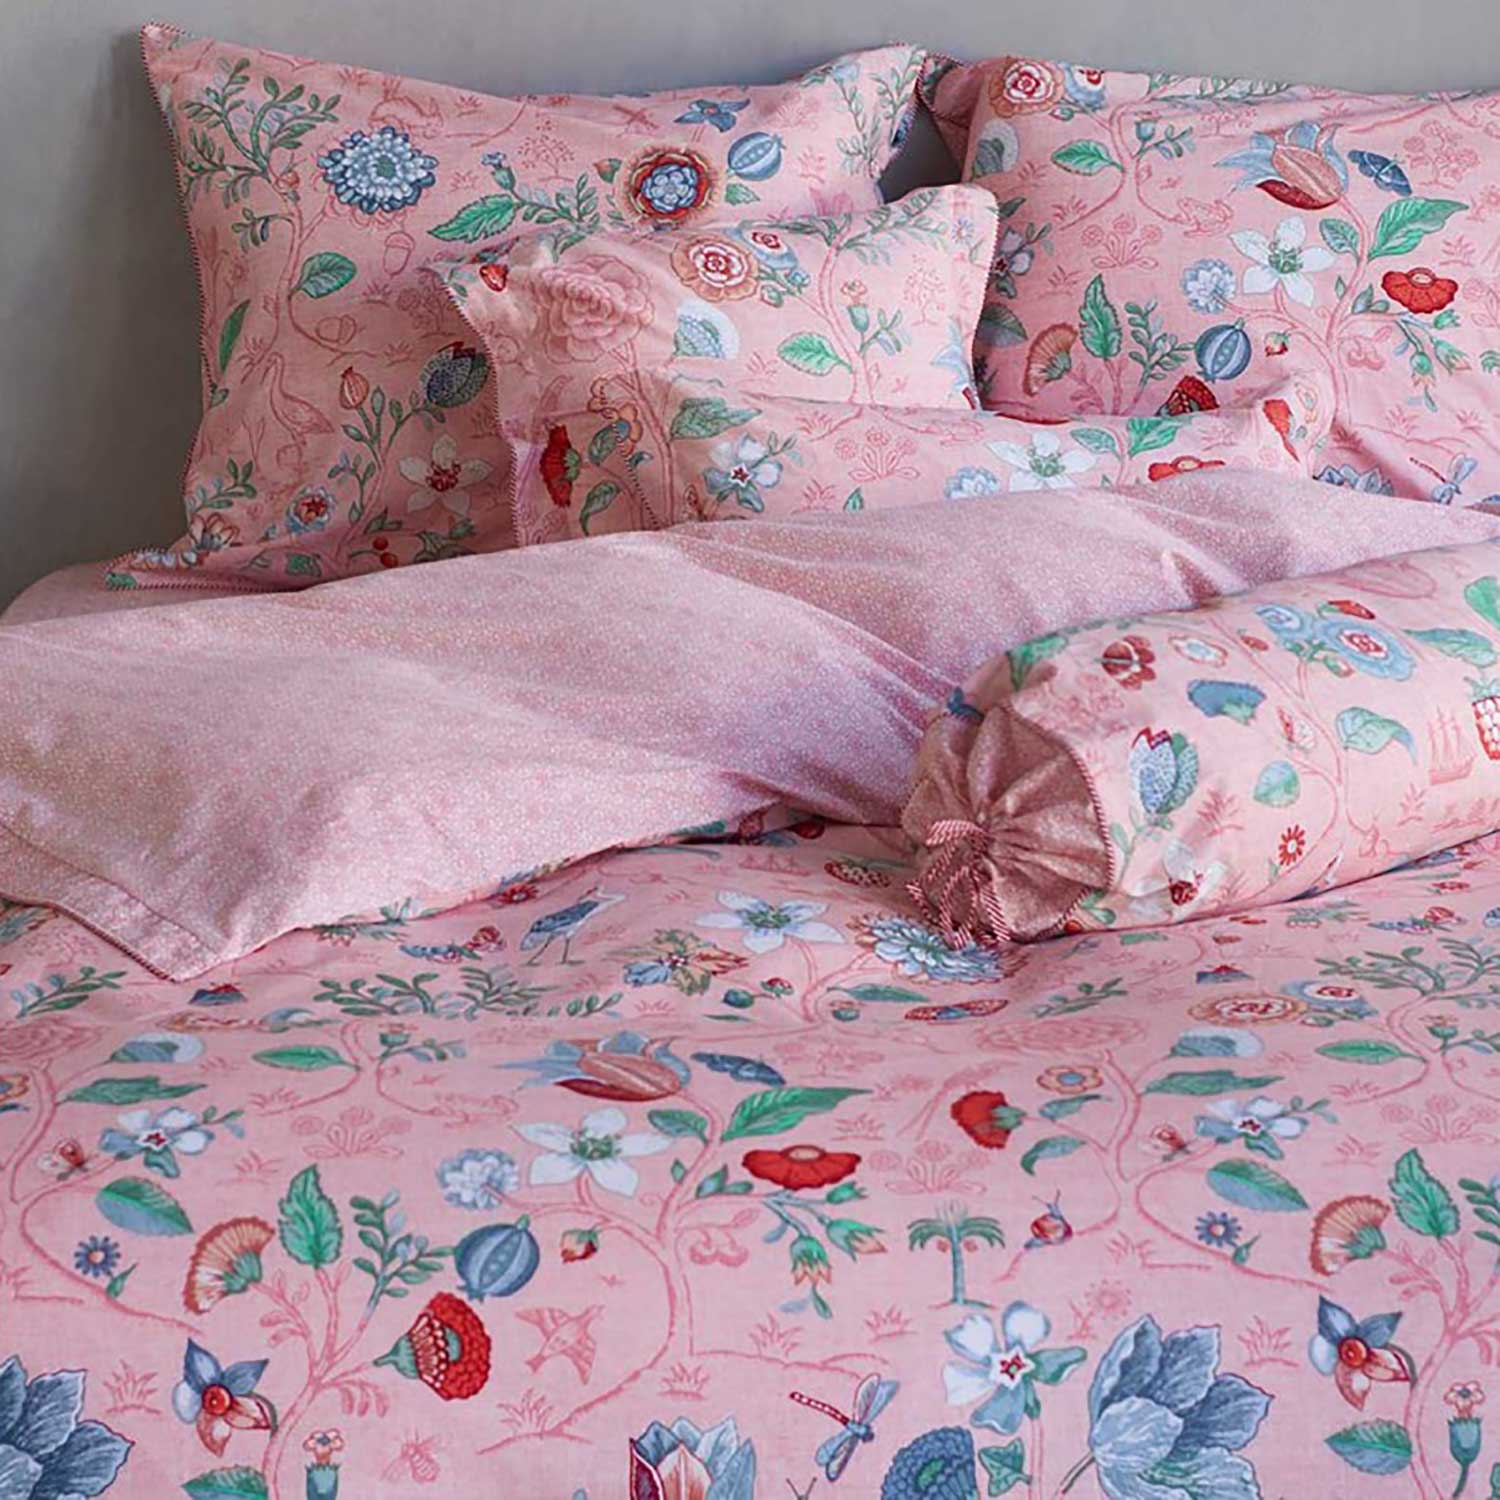 pip studio perkal spring to life petit pink 155x220 80x80 sleep with a smile. Black Bedroom Furniture Sets. Home Design Ideas